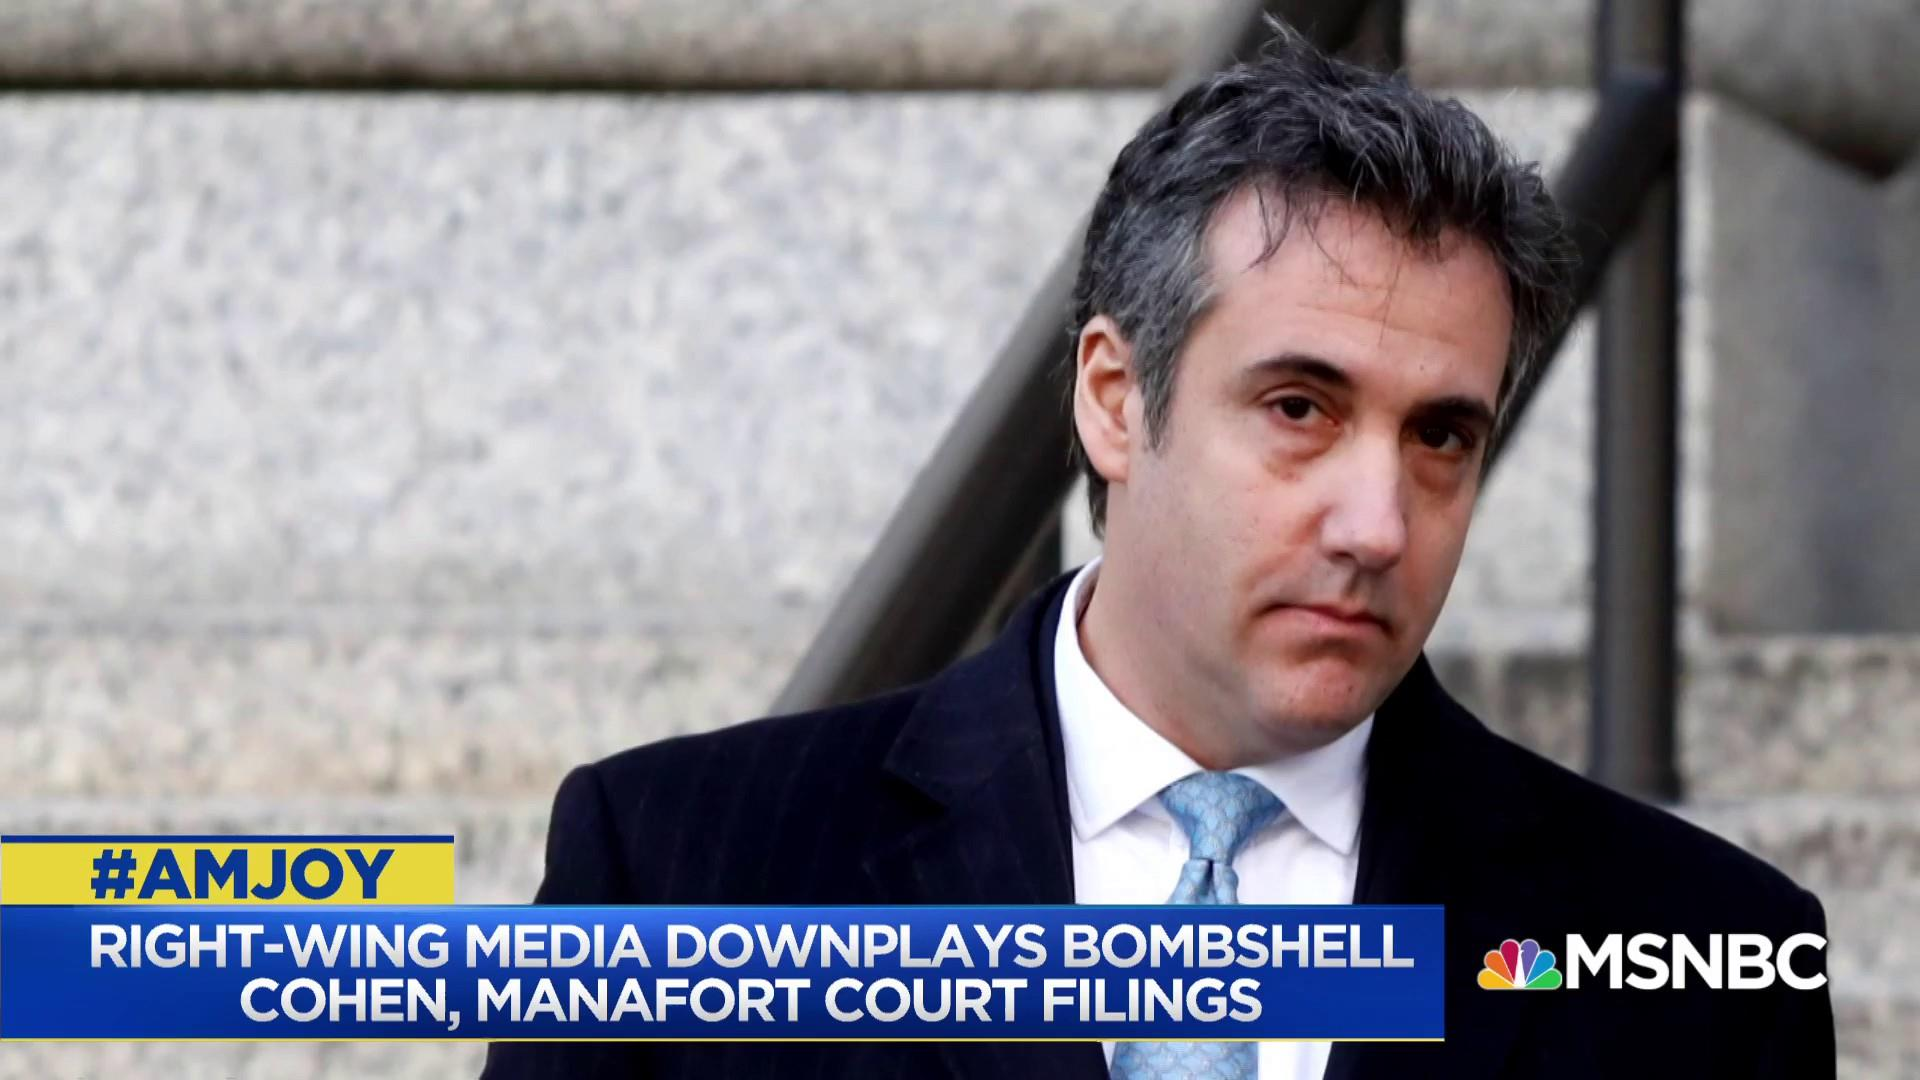 Right-wing media downplays bombshell Cohen, Manafort court filings